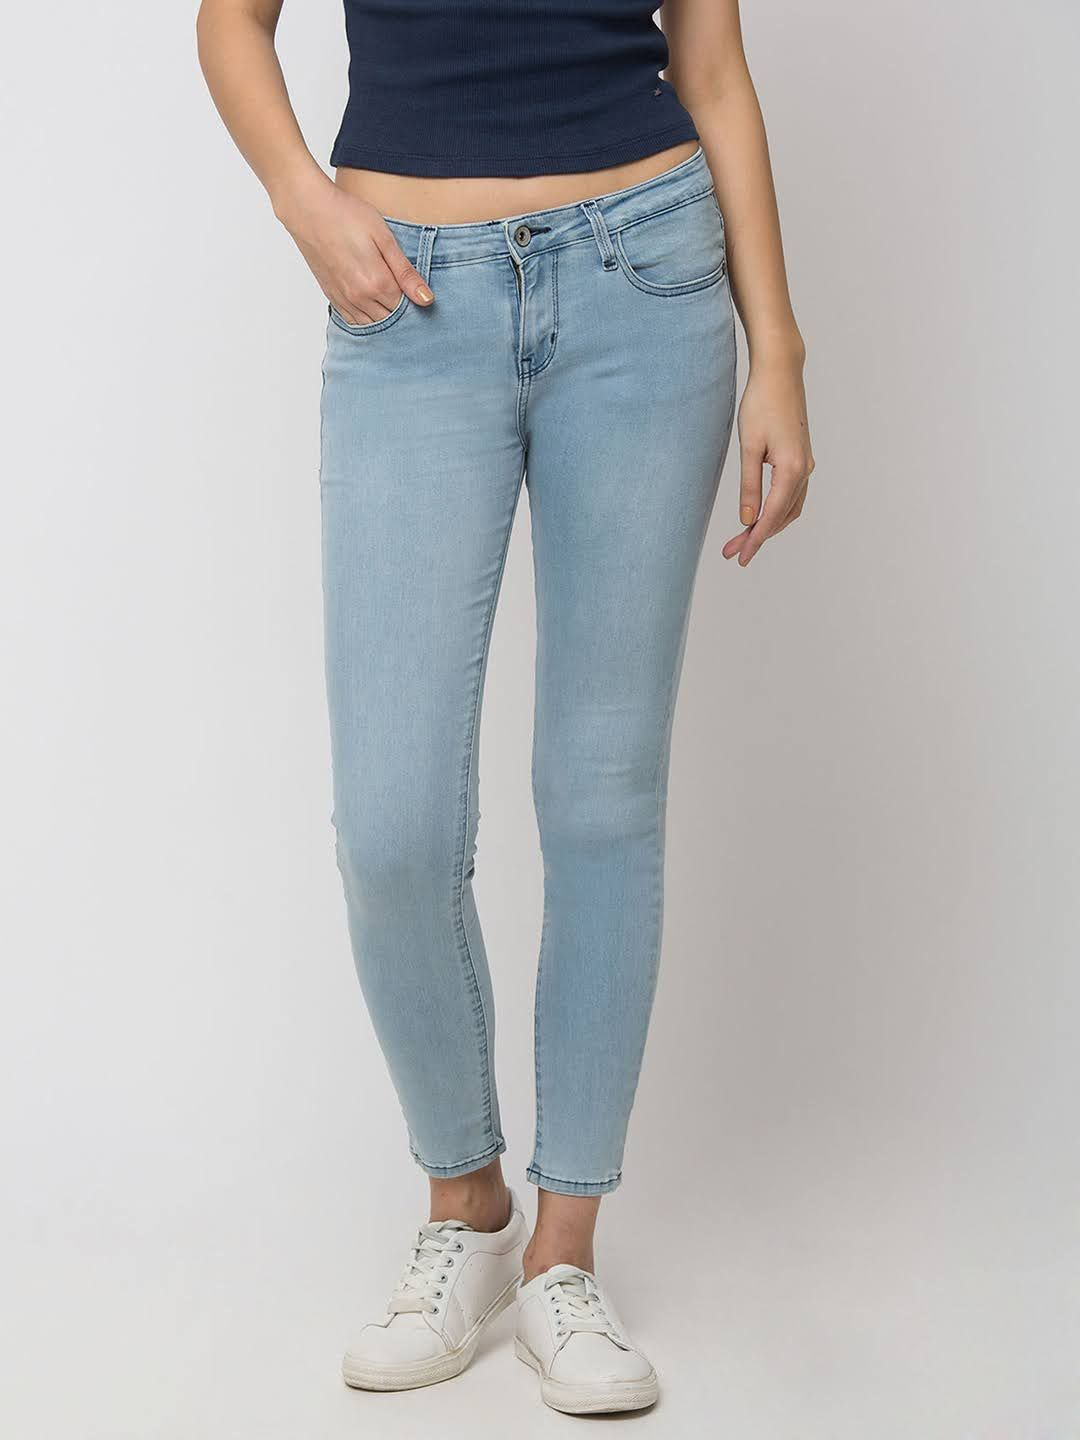 SPYKAR Light Blue Cotton SUPER SKINNY FIT JEANS